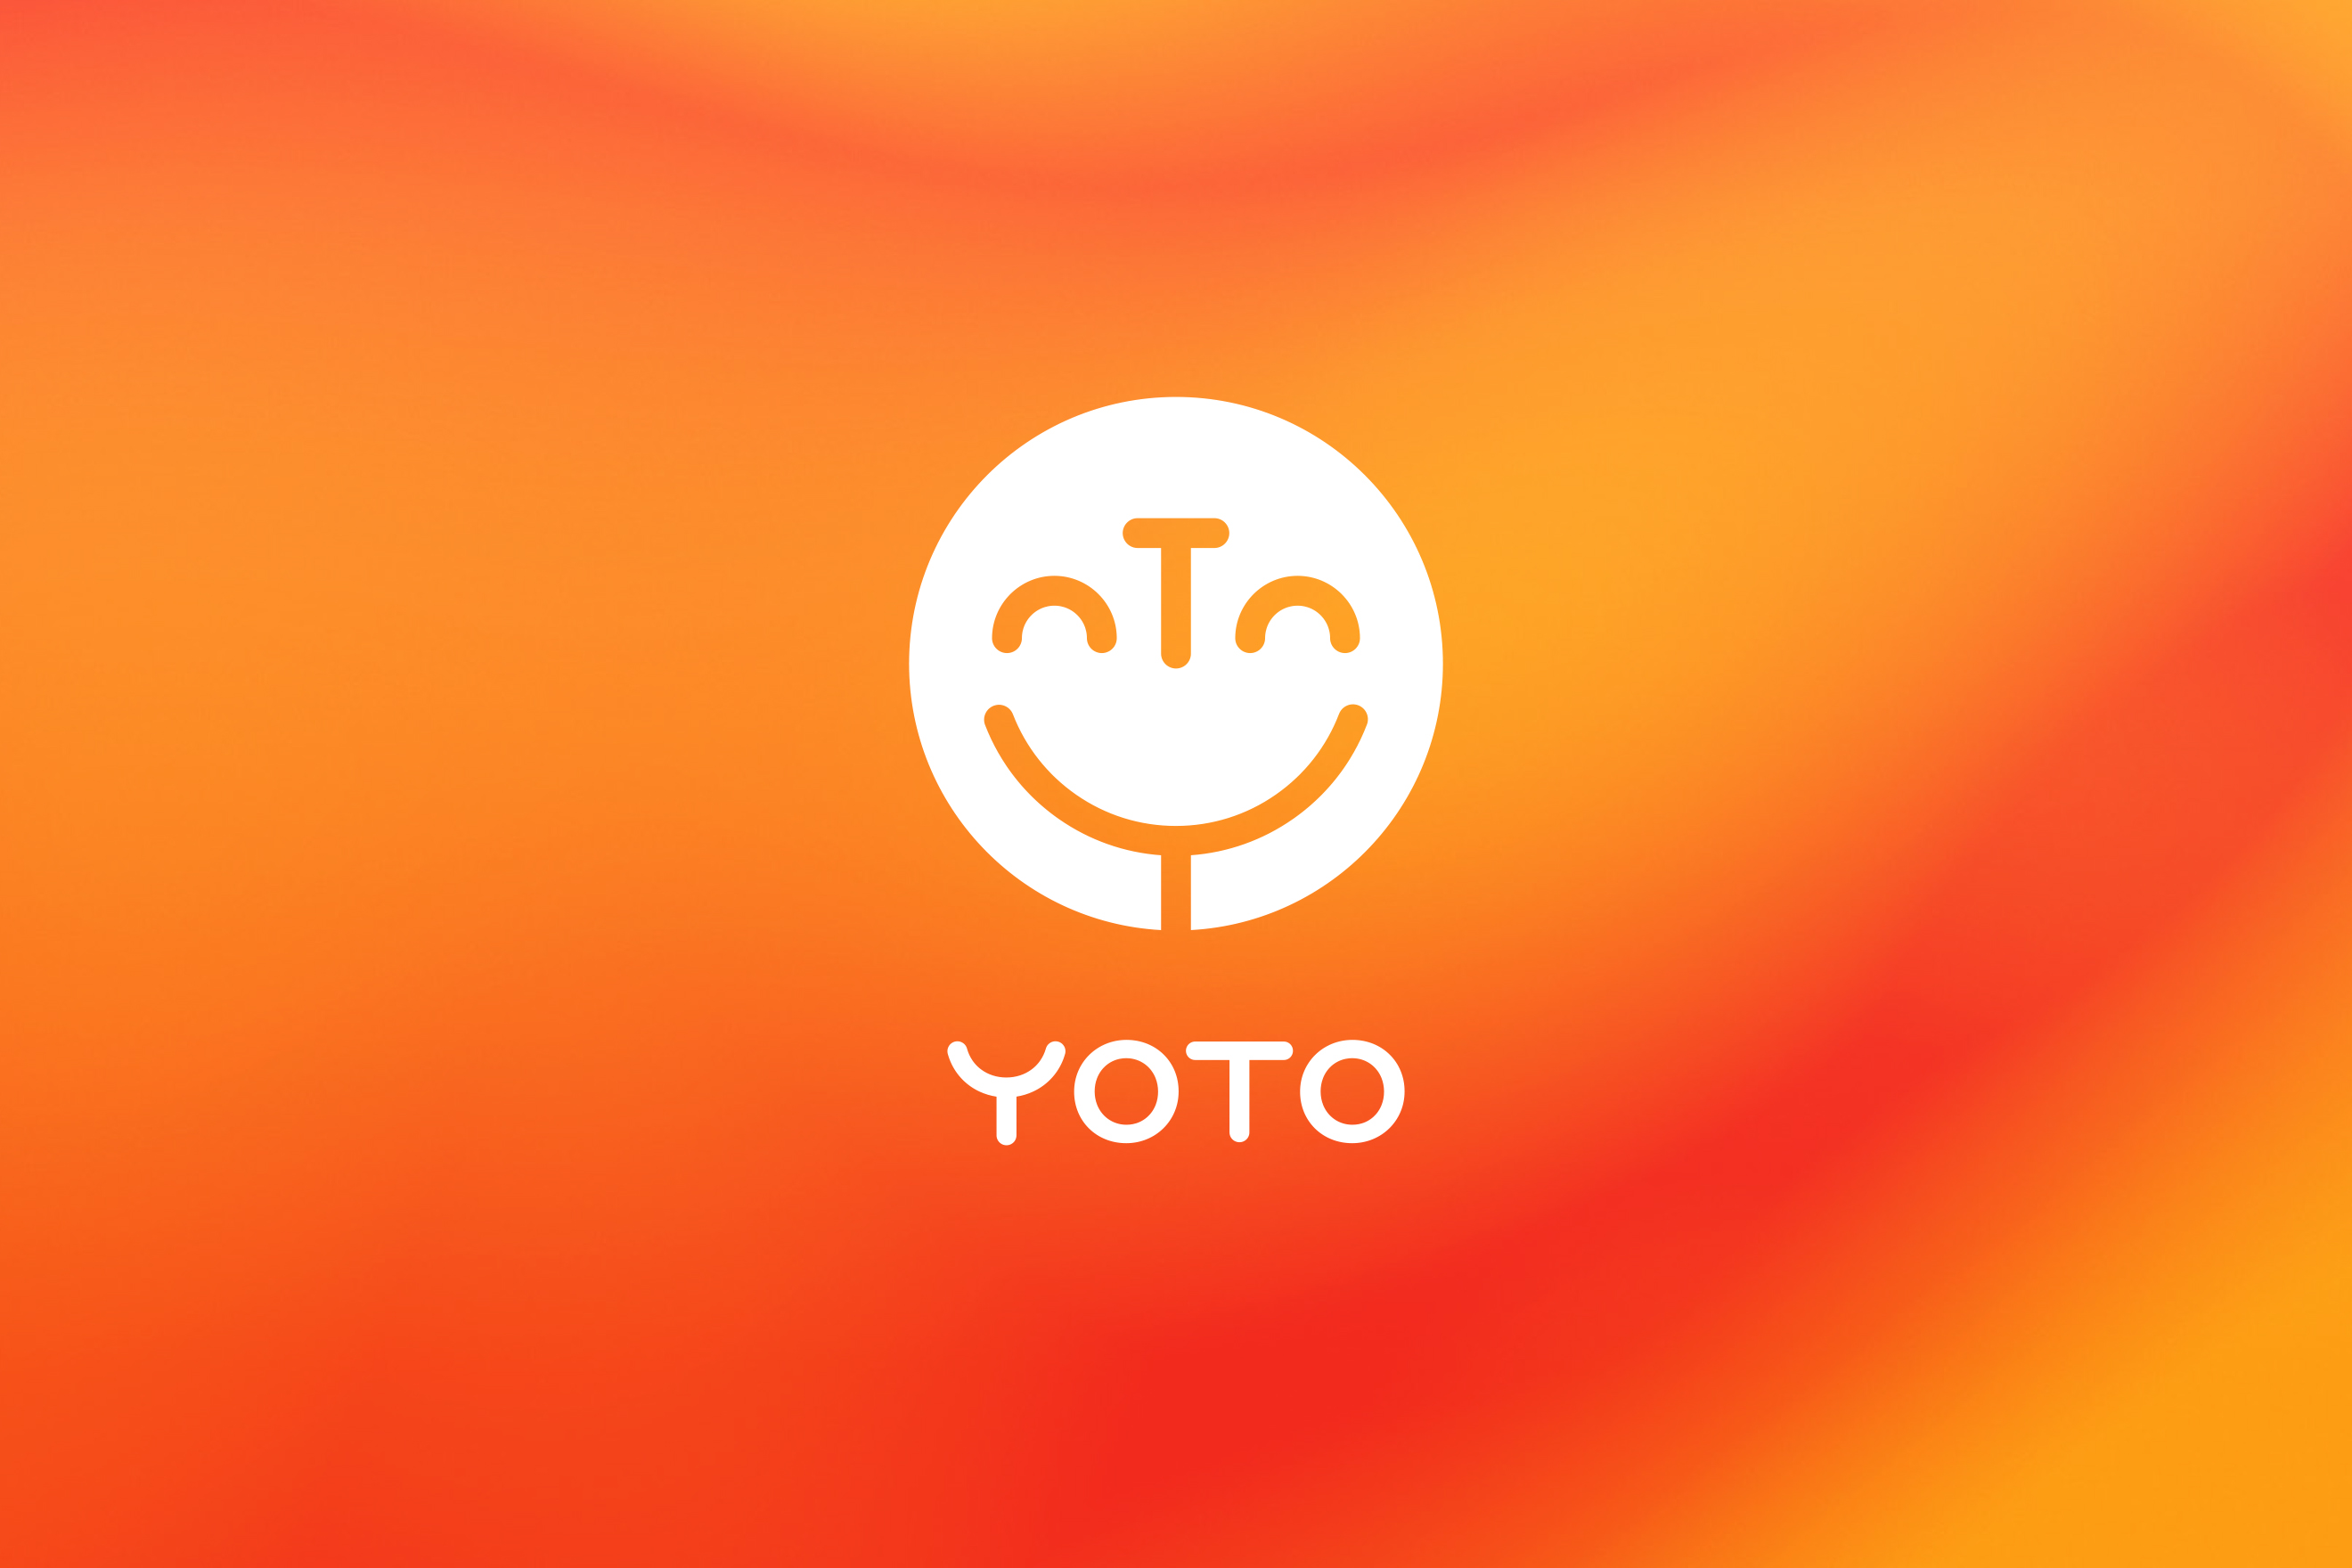 White Yoto logo on orange and yellow background